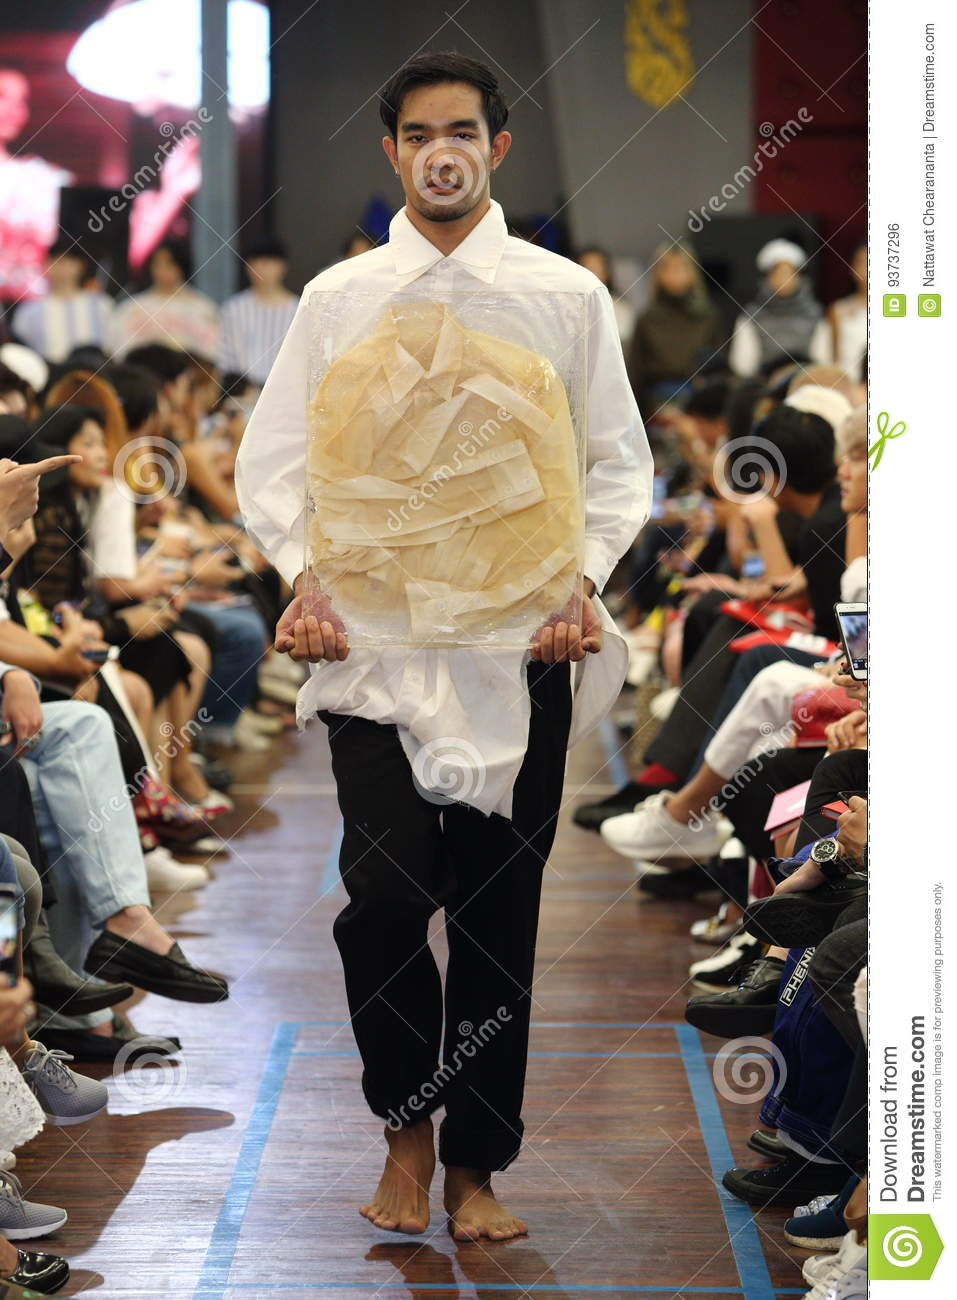 thesis fashion swu